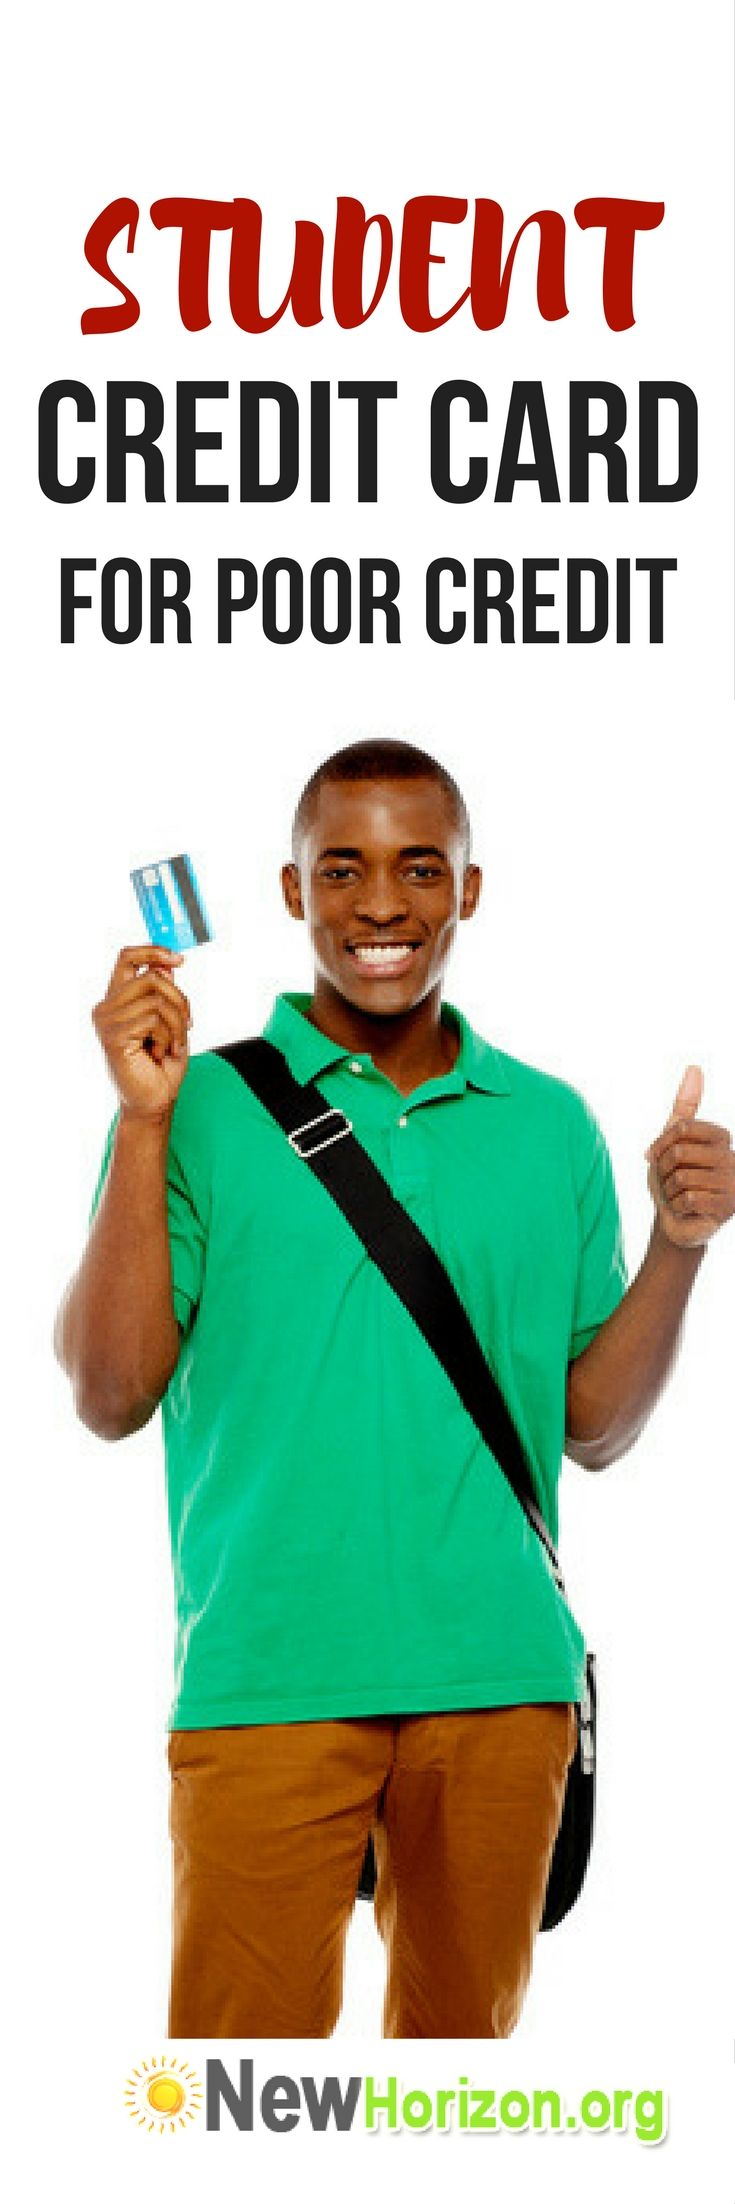 List of Student Credit Cards for Poor Credit